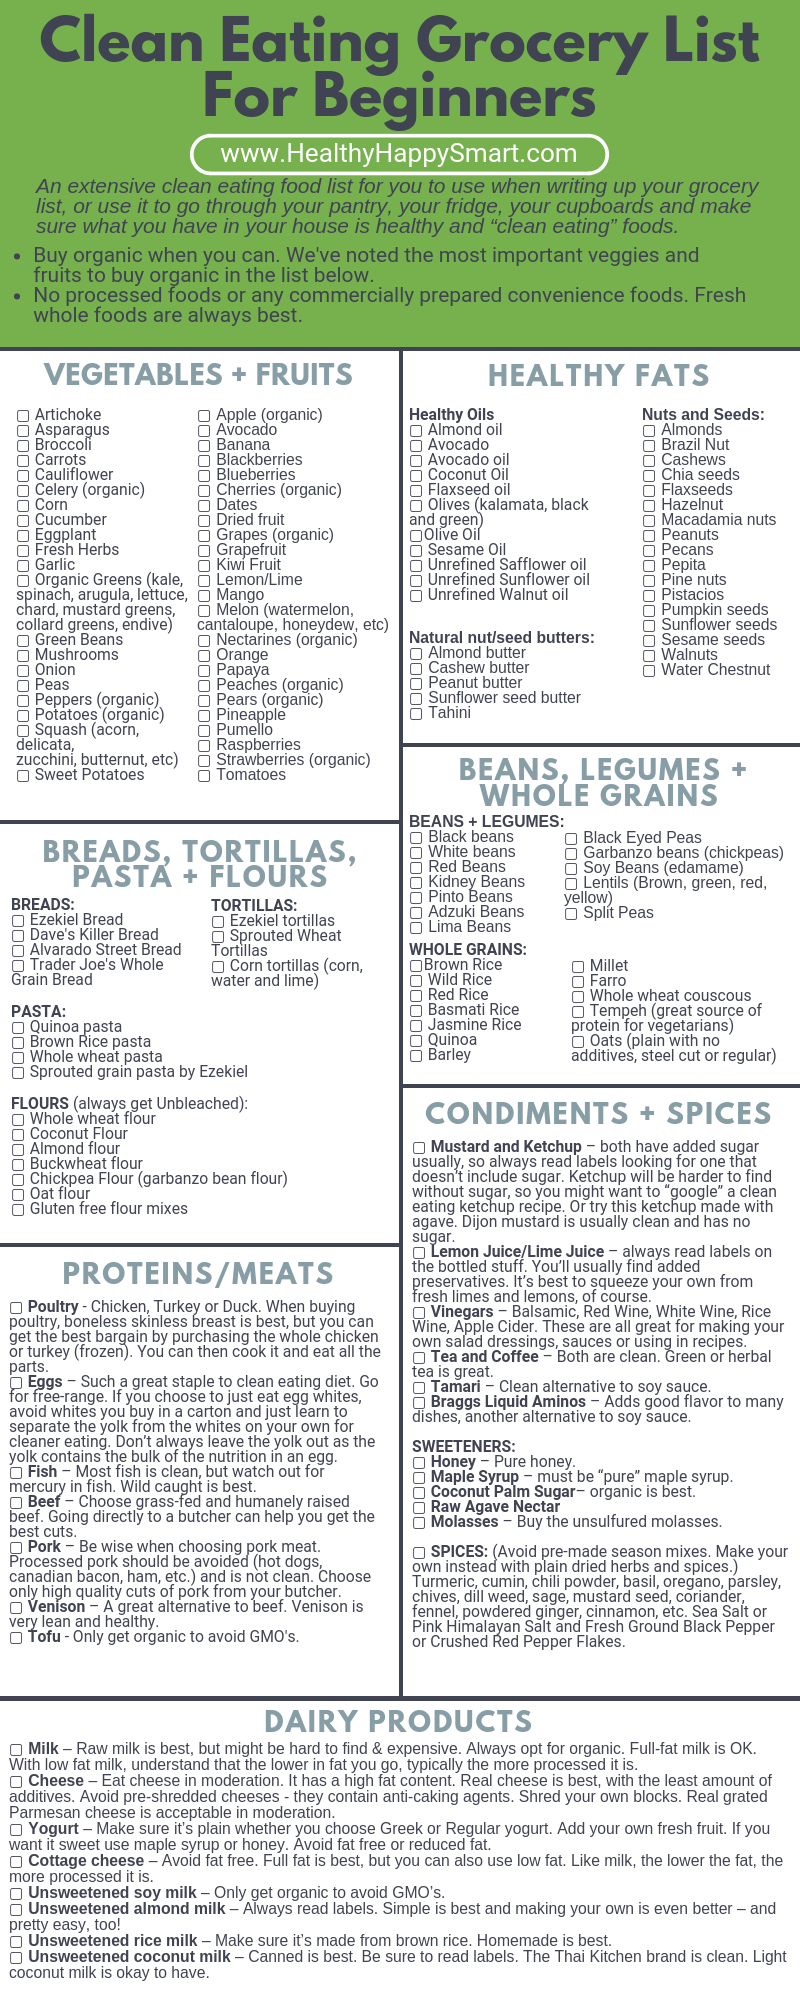 Clean Eating grocery list, clean eating Shopping list. How to eat clean! food list shopping guide for beginners